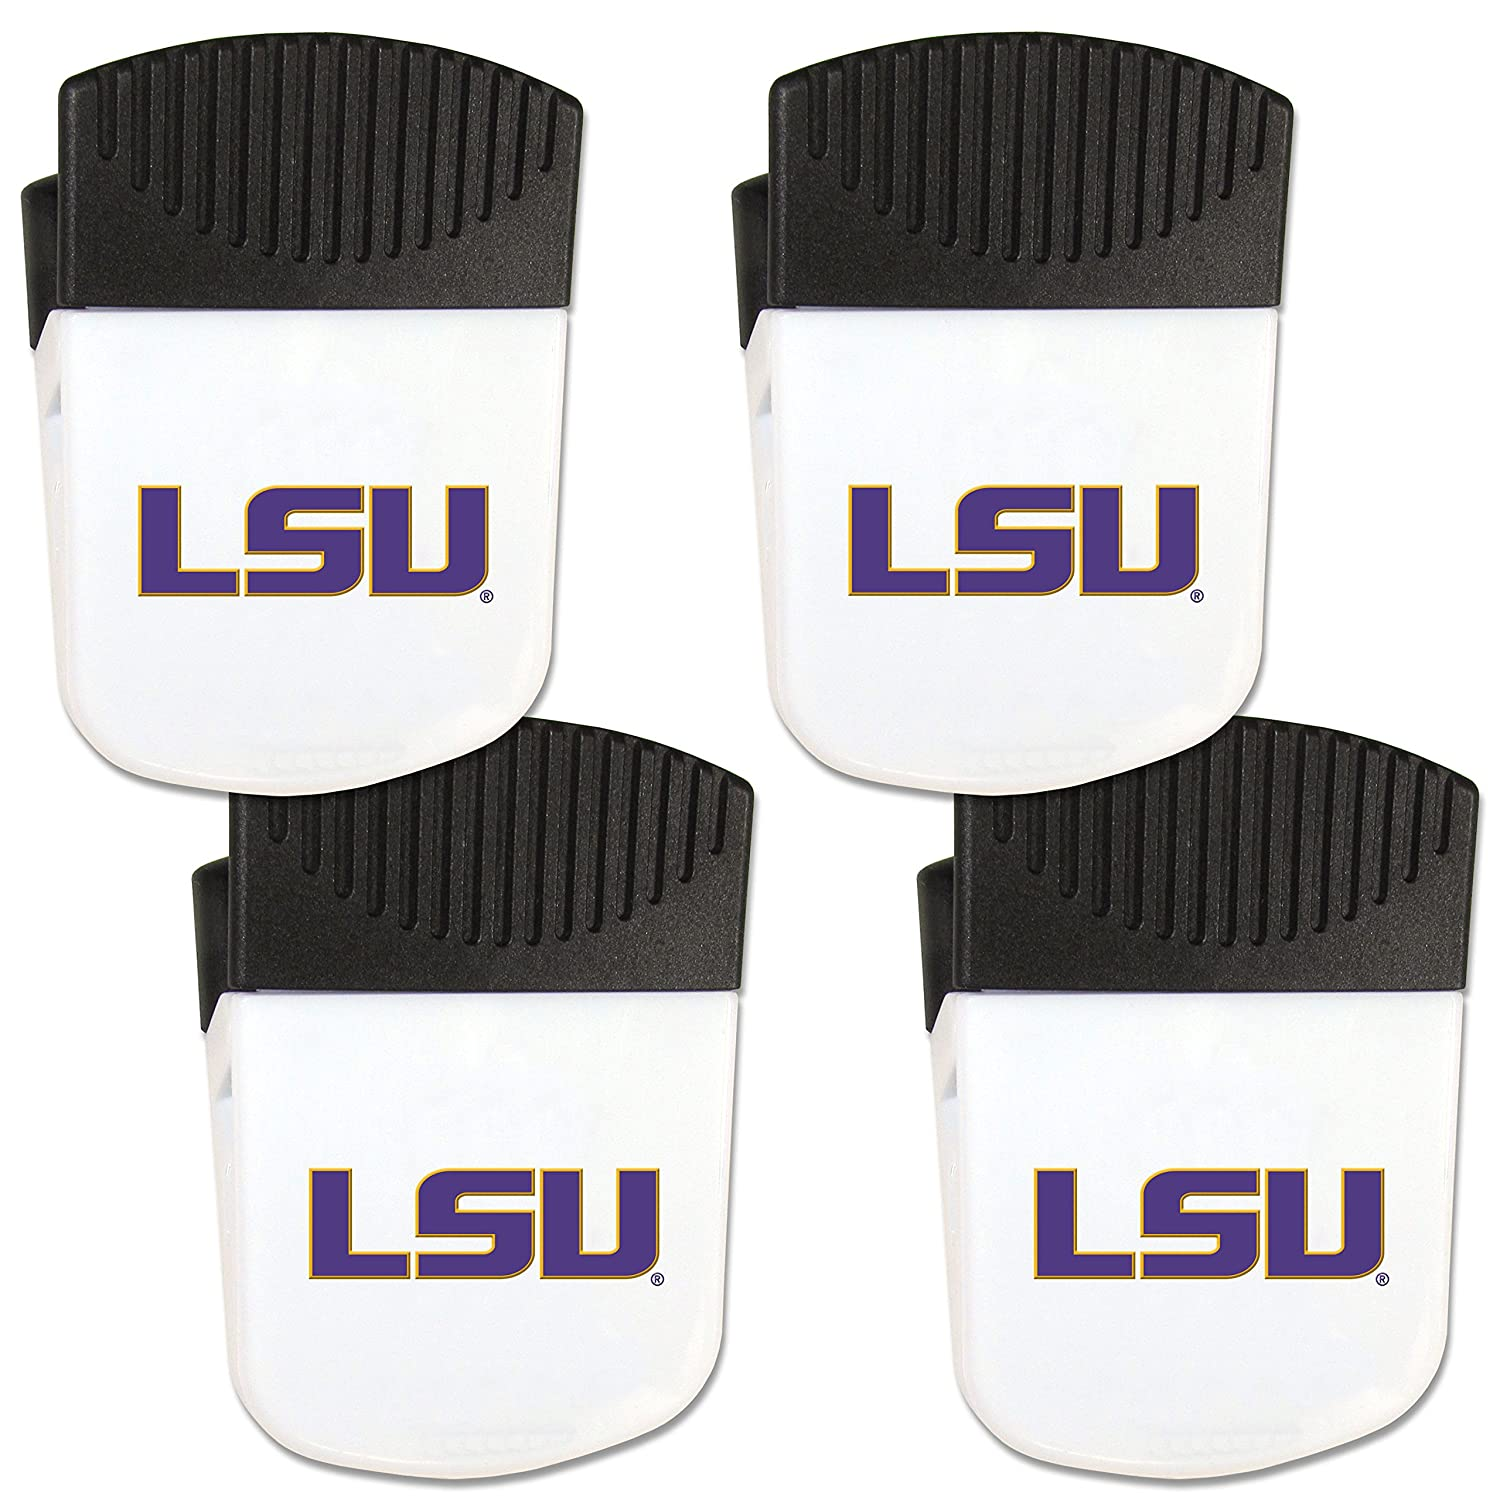 Siskiyou NCAA Unisex Chip Clip Magnet with Bottle Opener 4 Pack Siskiyou Gifts Co Inc 4CPMC4-P